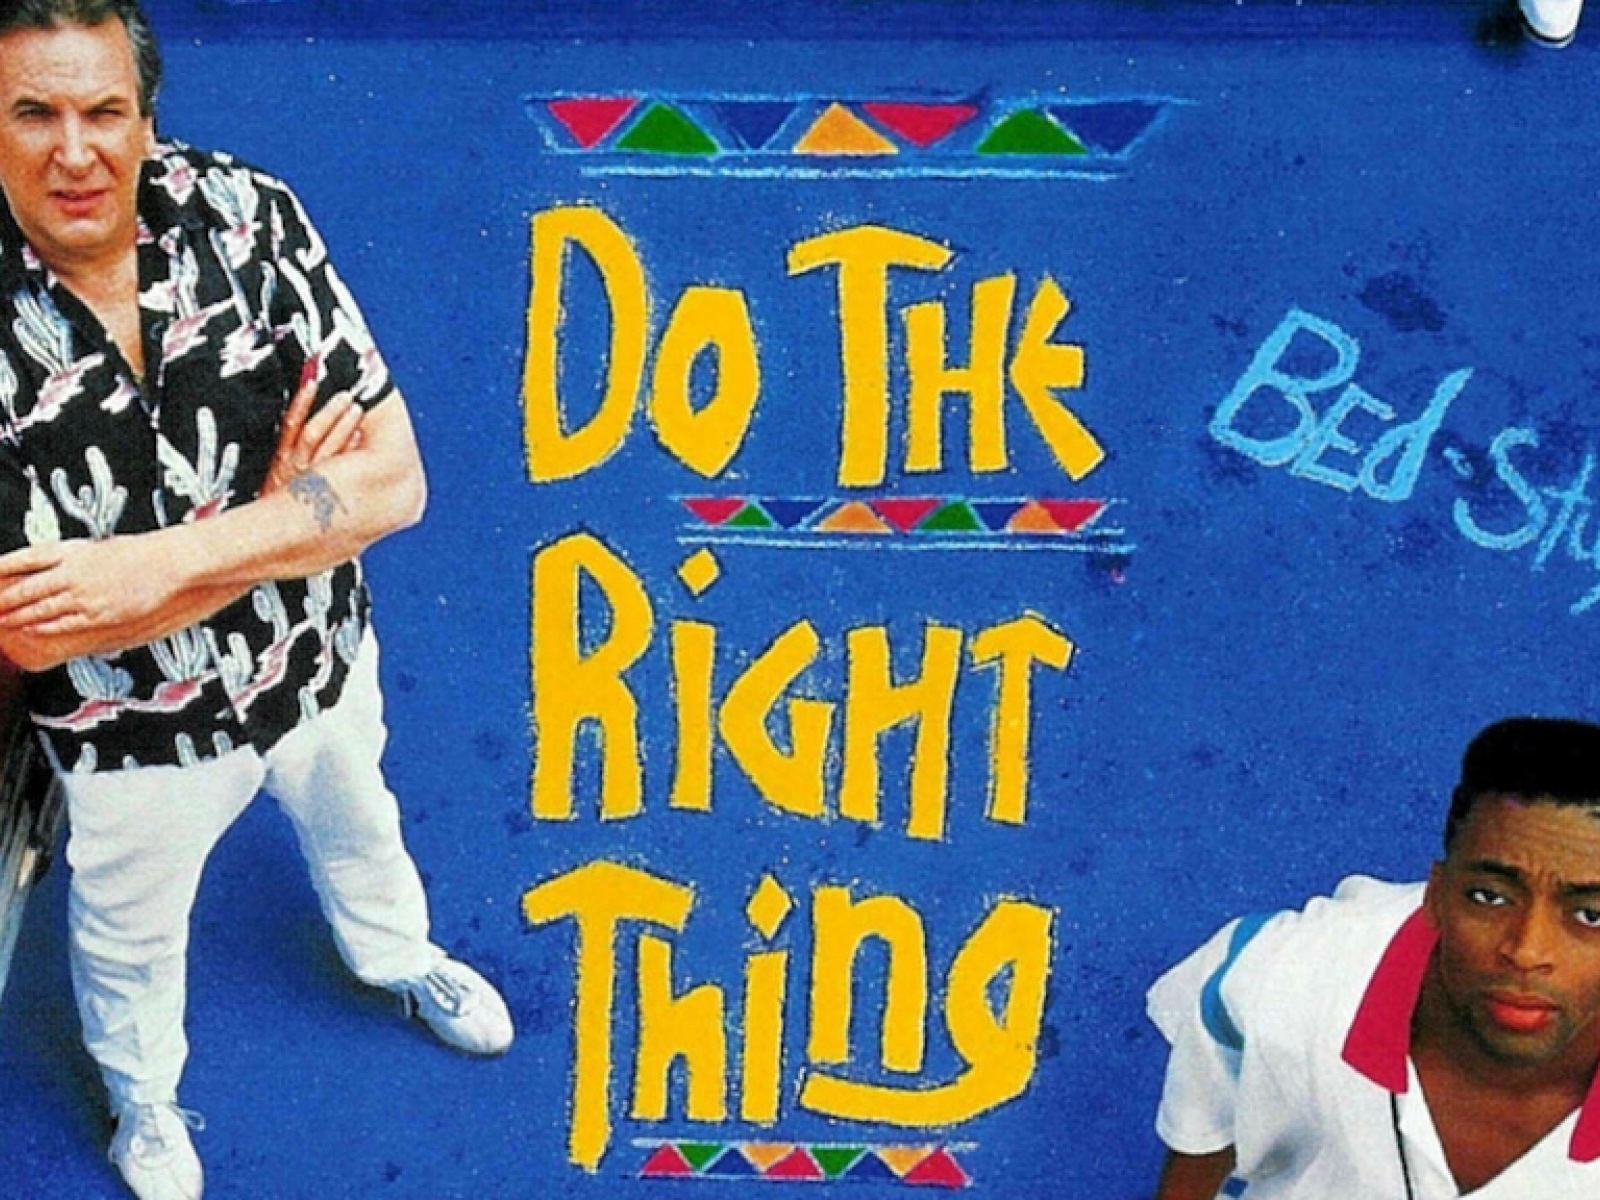 Eat|See|Hear Do The Right Thing